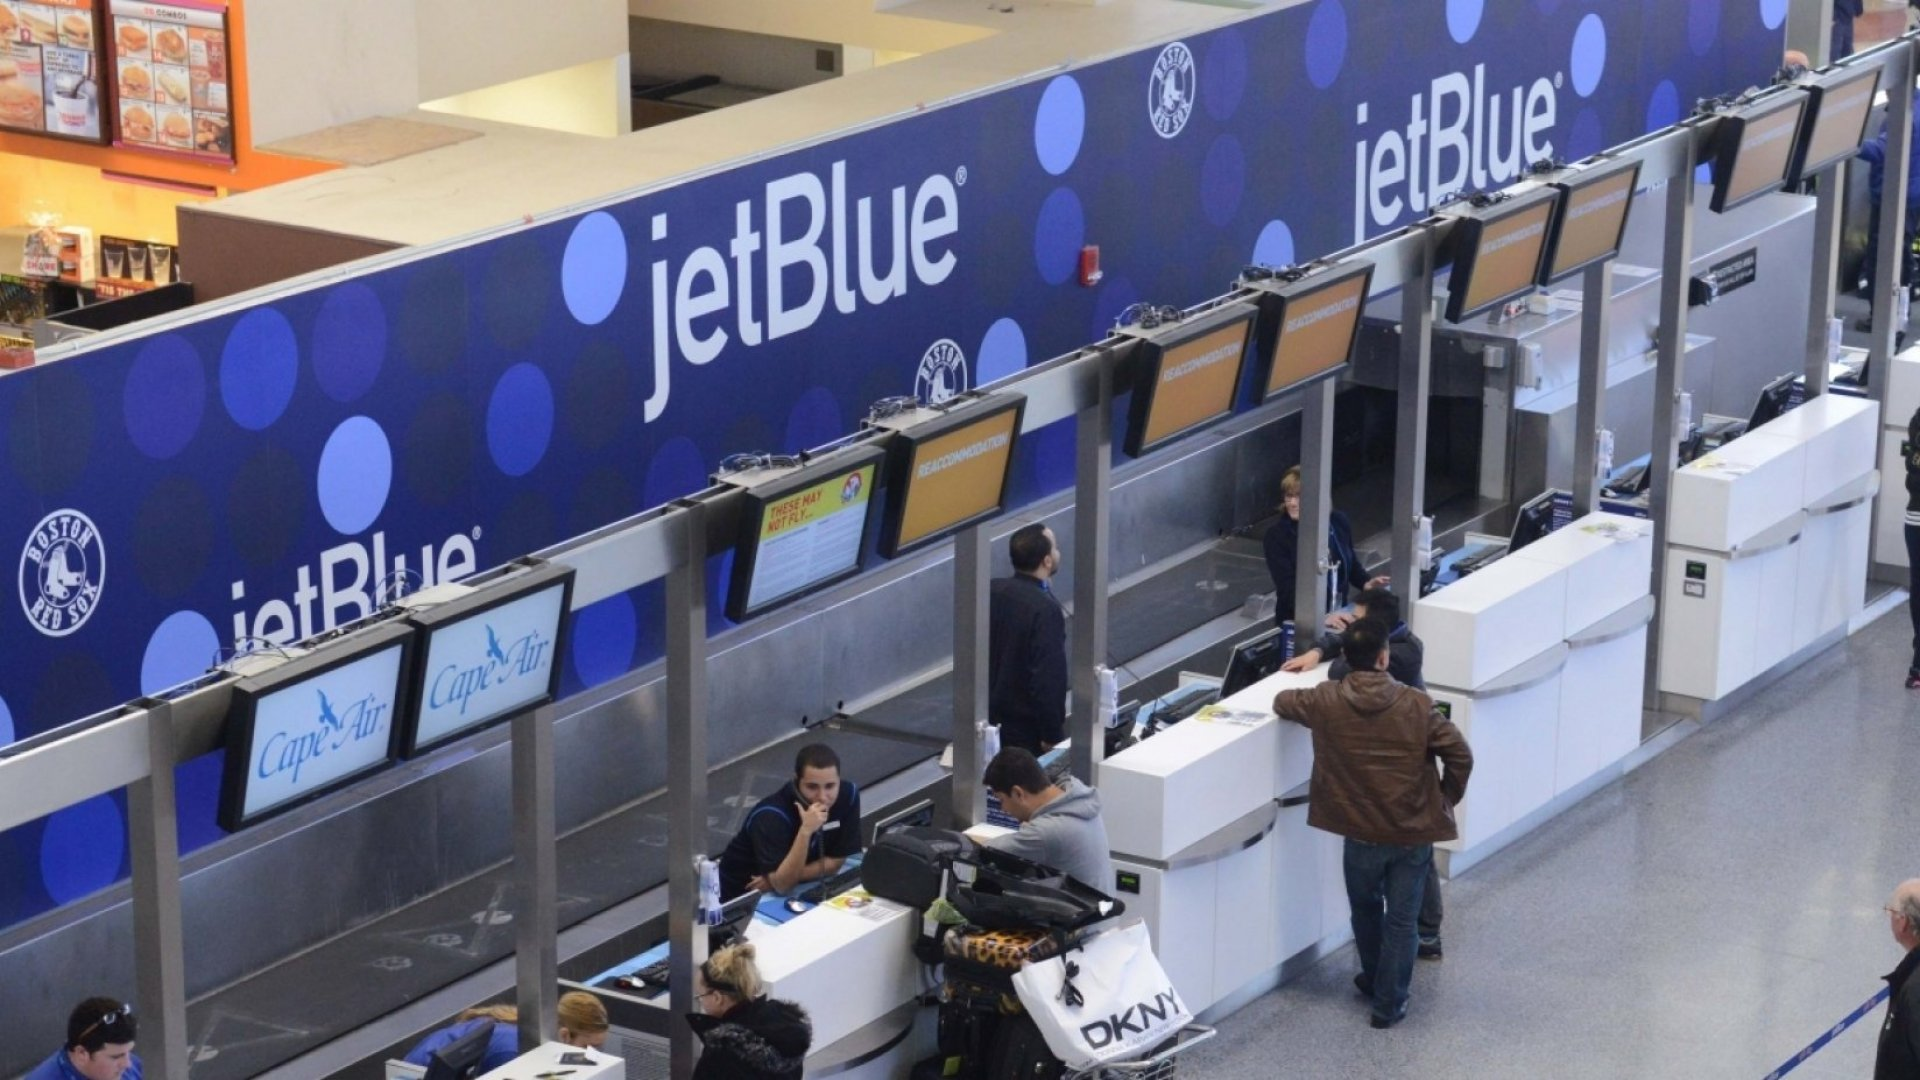 Stunning JetBlue Passenger Video Shows Exactly What Flying Has Become (and Why Good Flight Attendants Deserve Lots of Thanks)